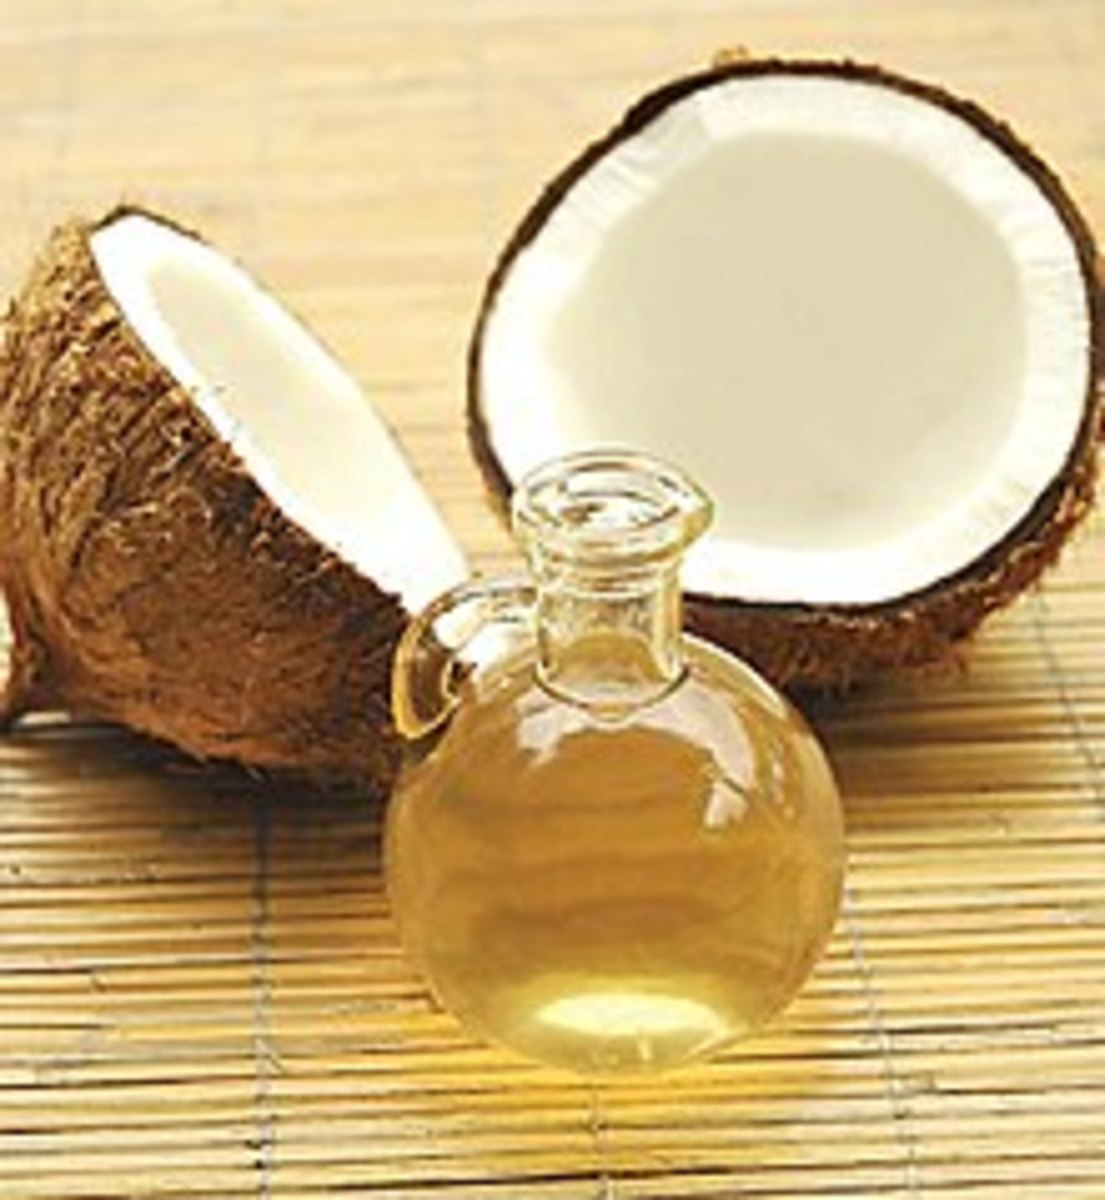 coconut-oil-the-best-choice-for-cooking-purposes